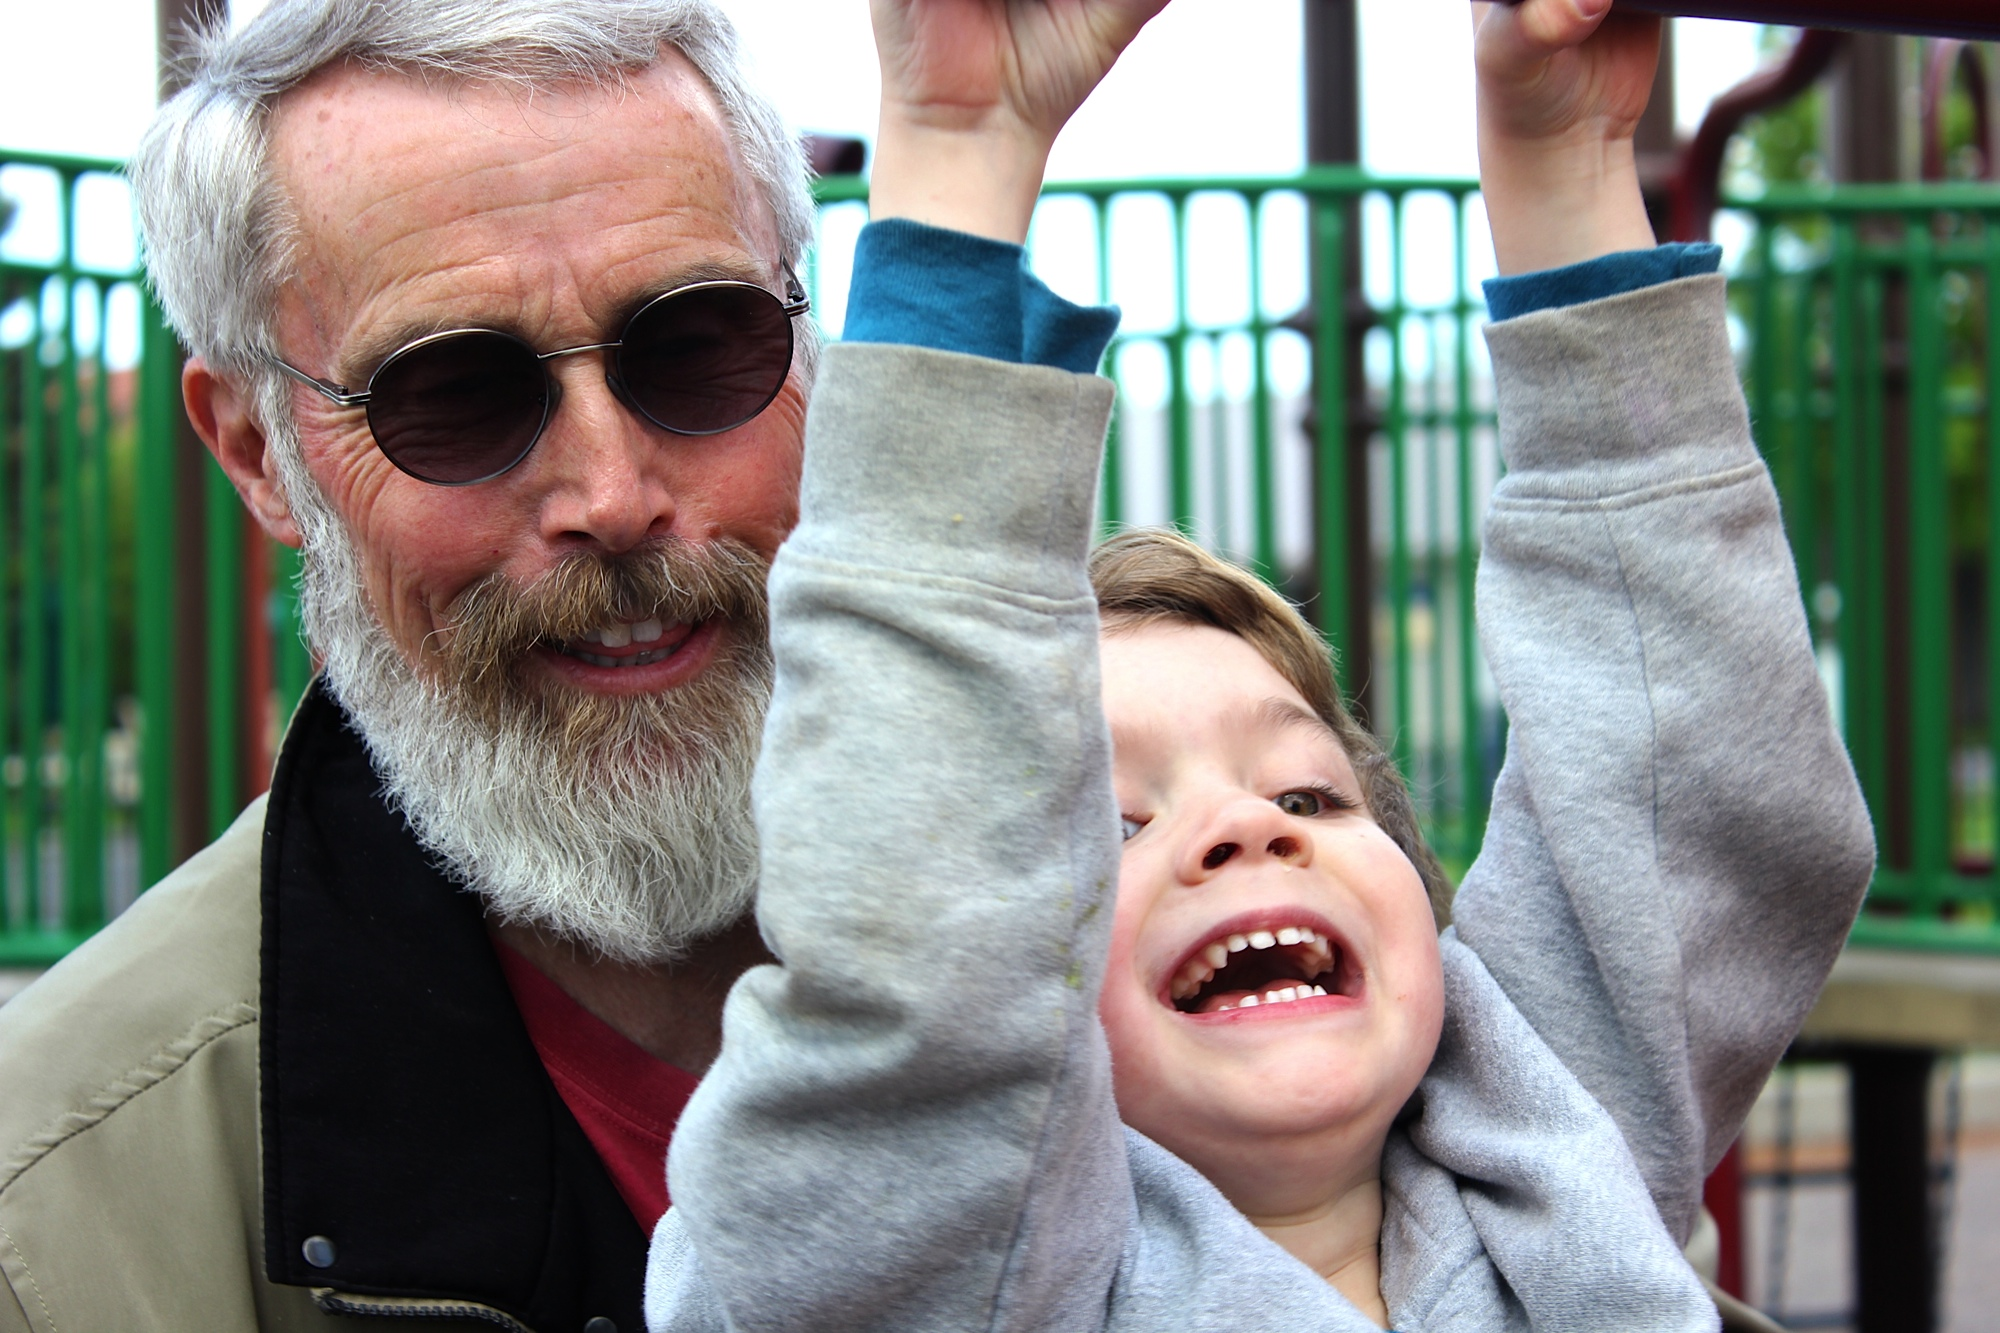 Bob and grandson at playground